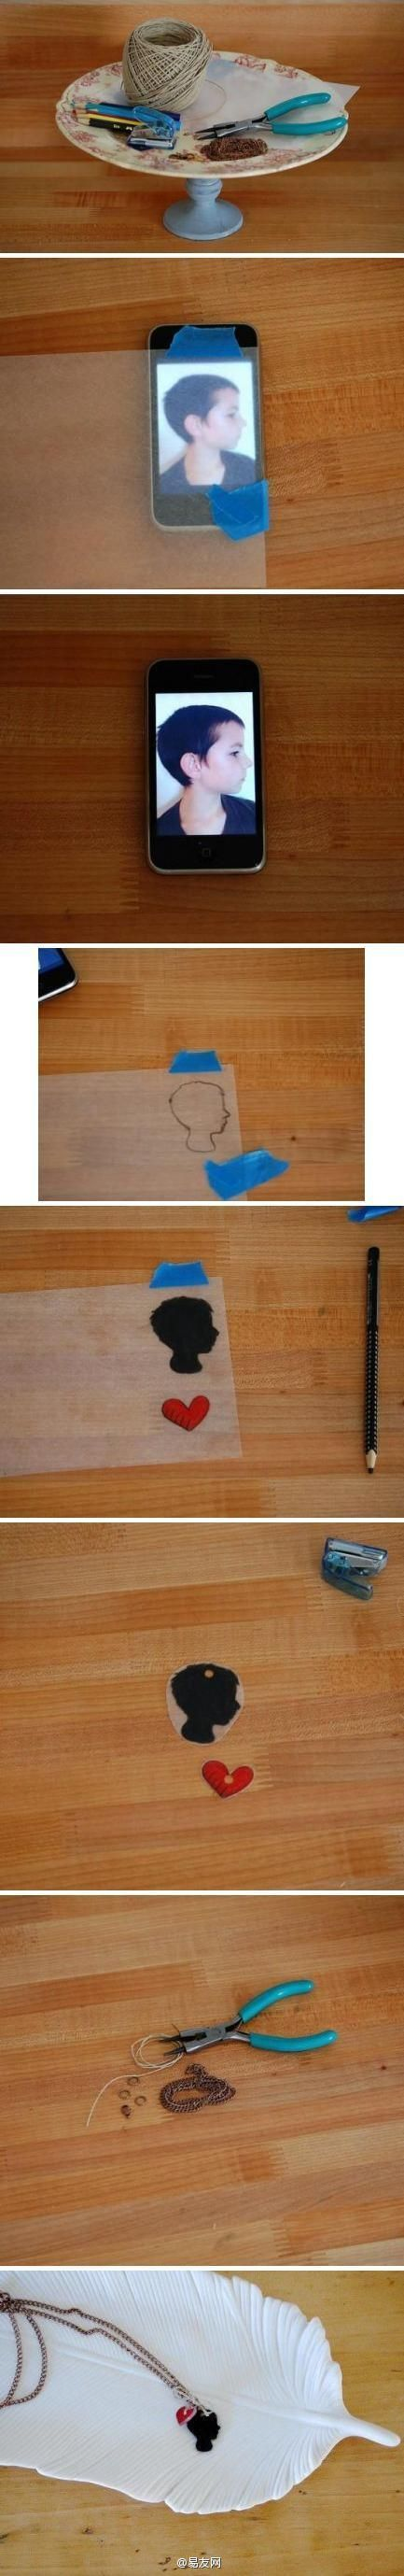 shrinky dink your children! I love this so so much!!!